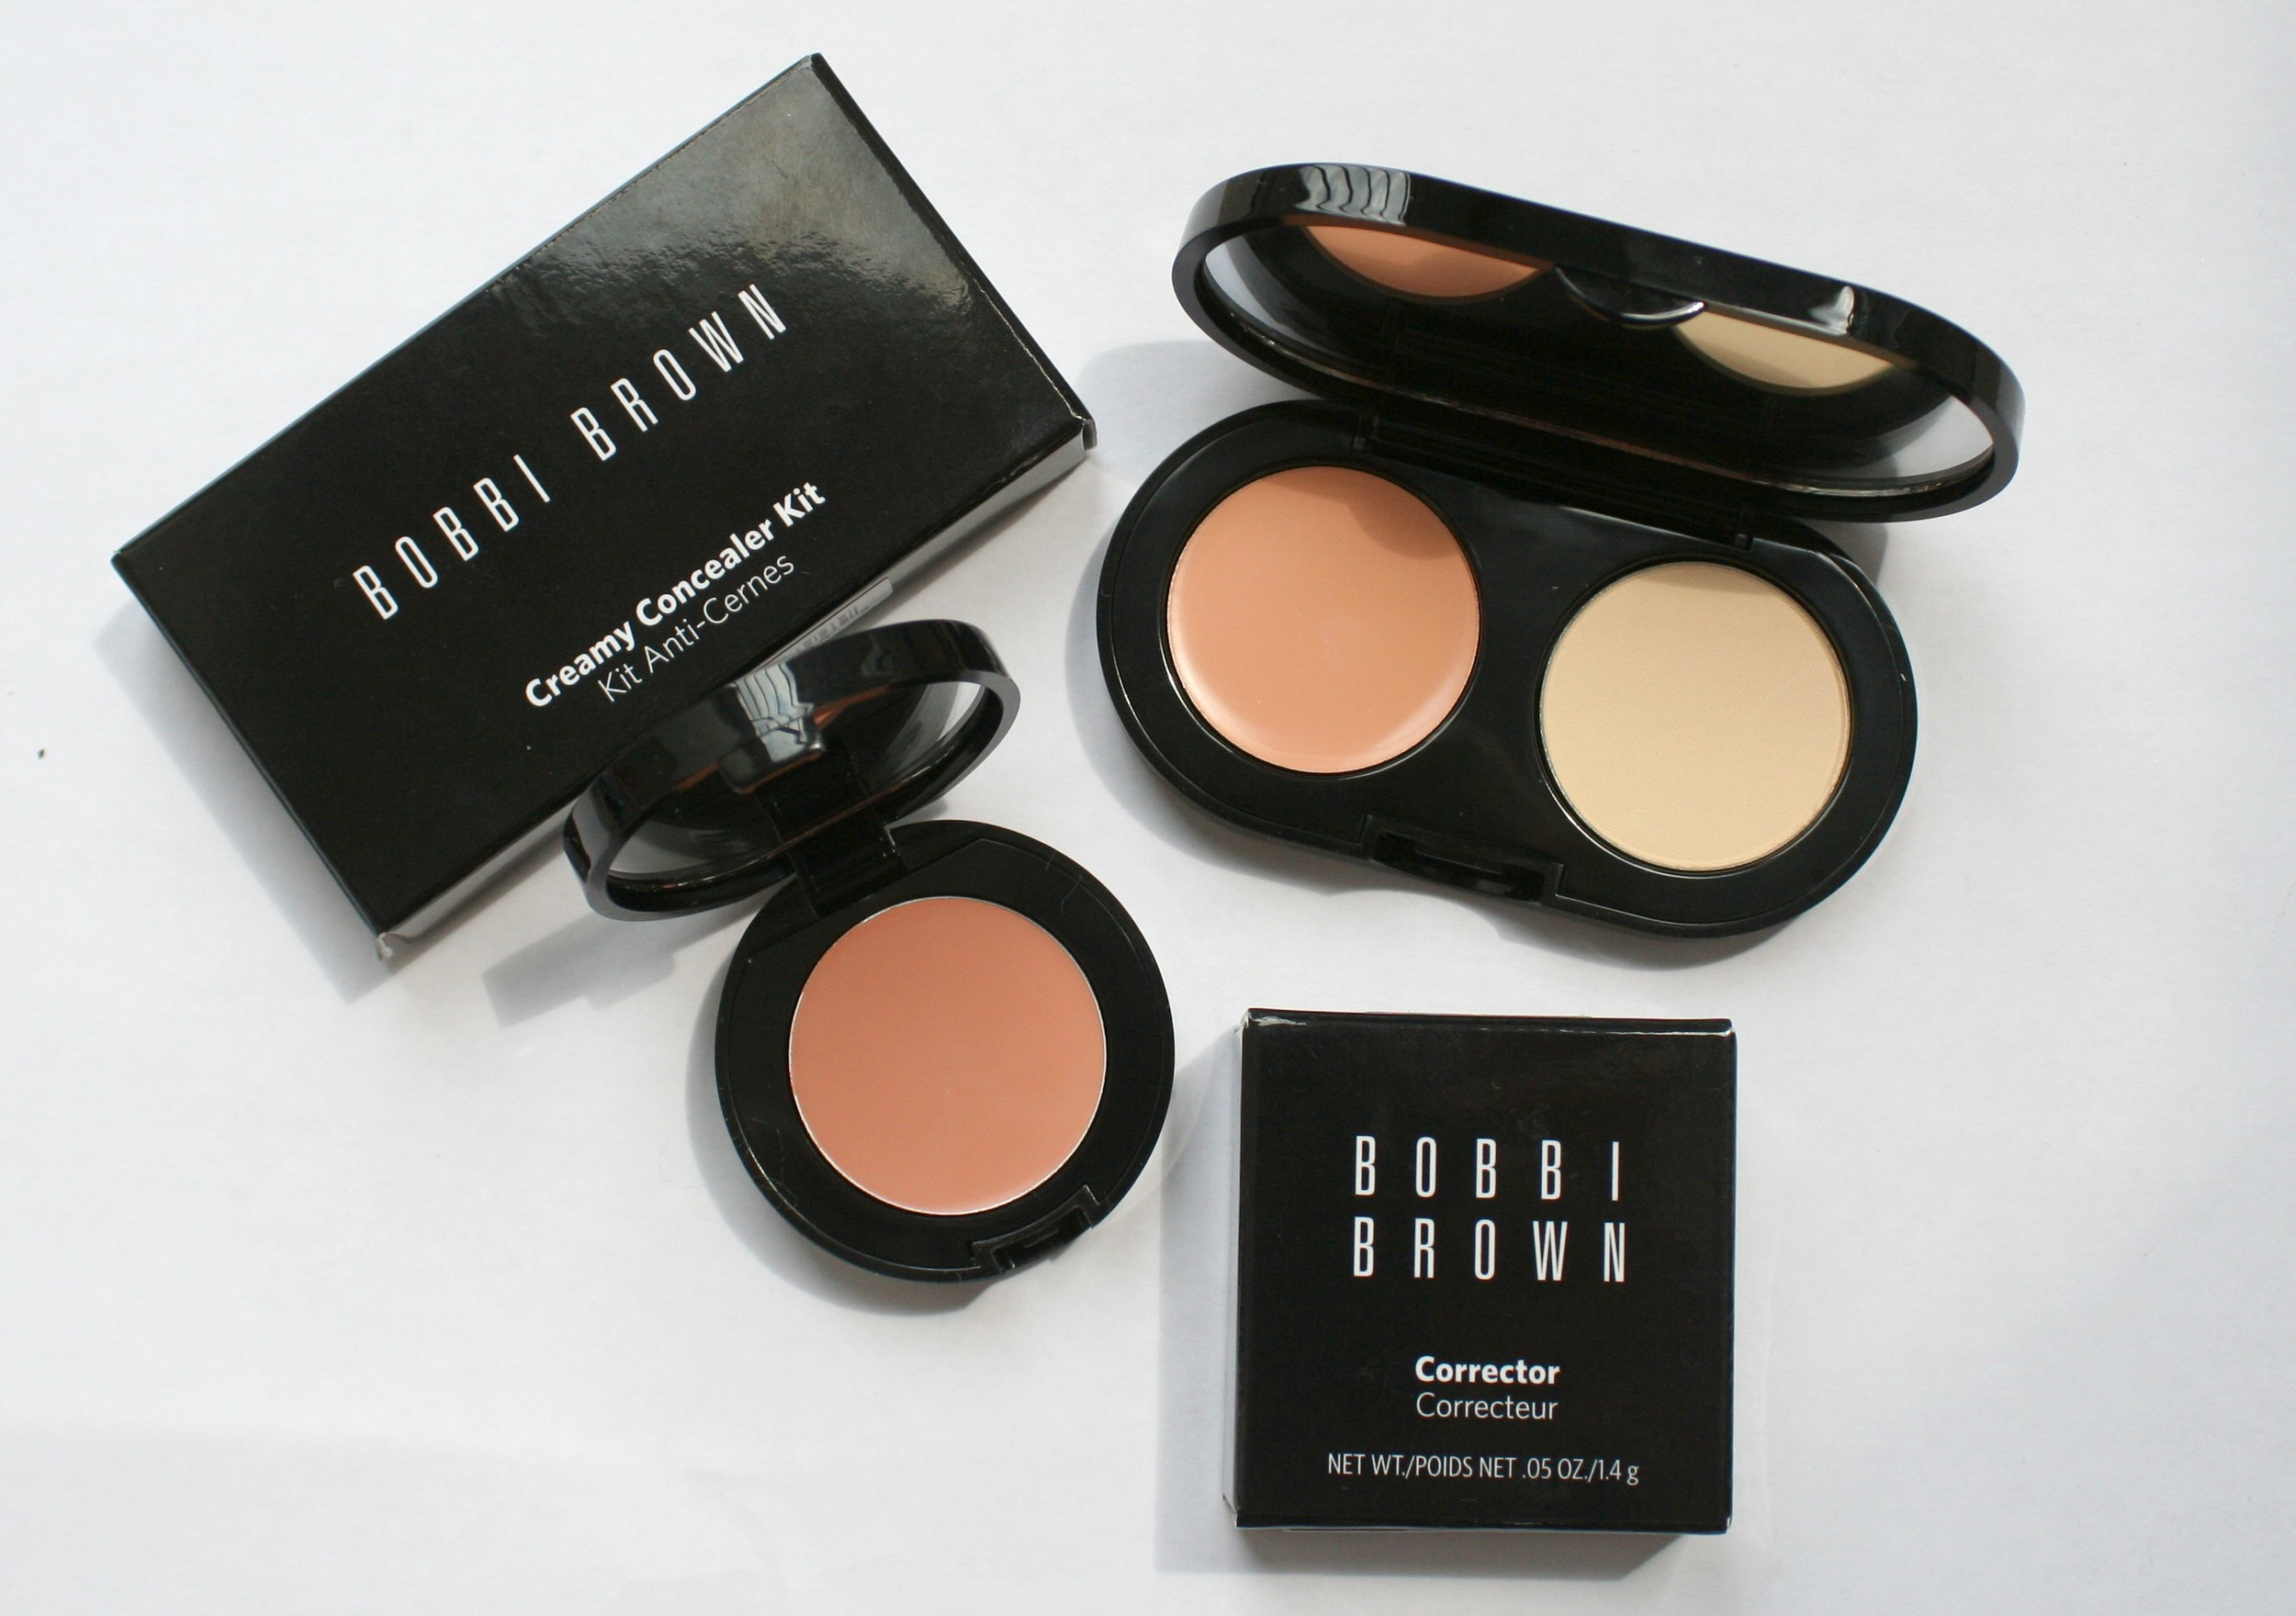 Bobbi Brown corrector in light to medium bisque, and concealer kit in cool sand